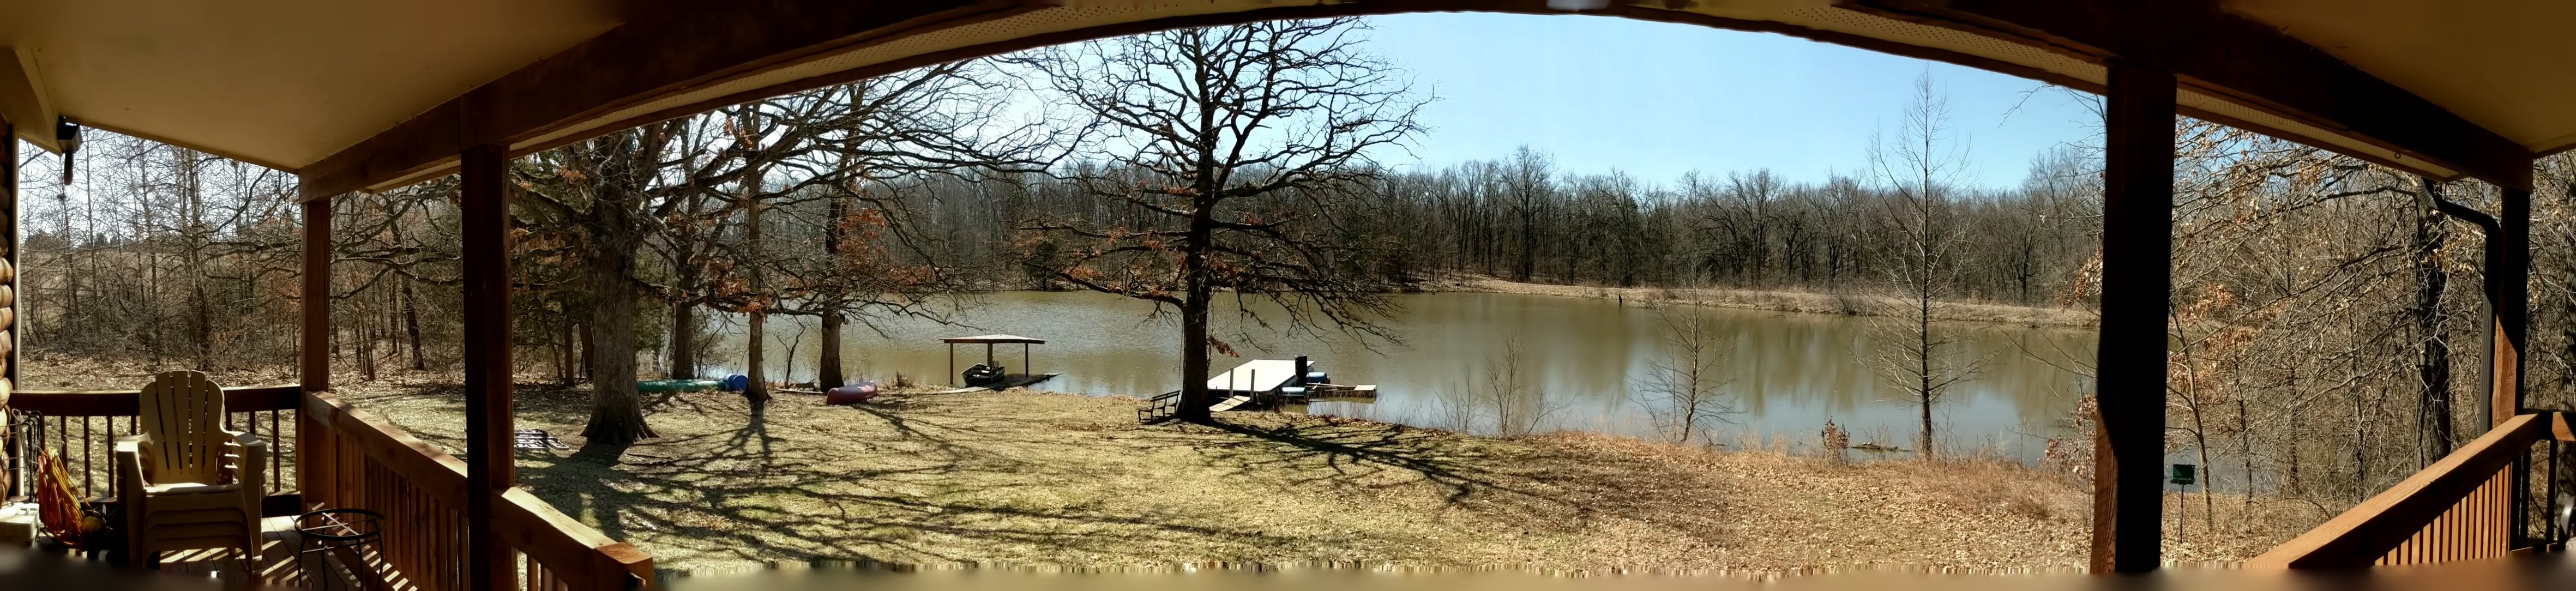 61 Acre Lakeside Country Home or Weekend Get-Away!